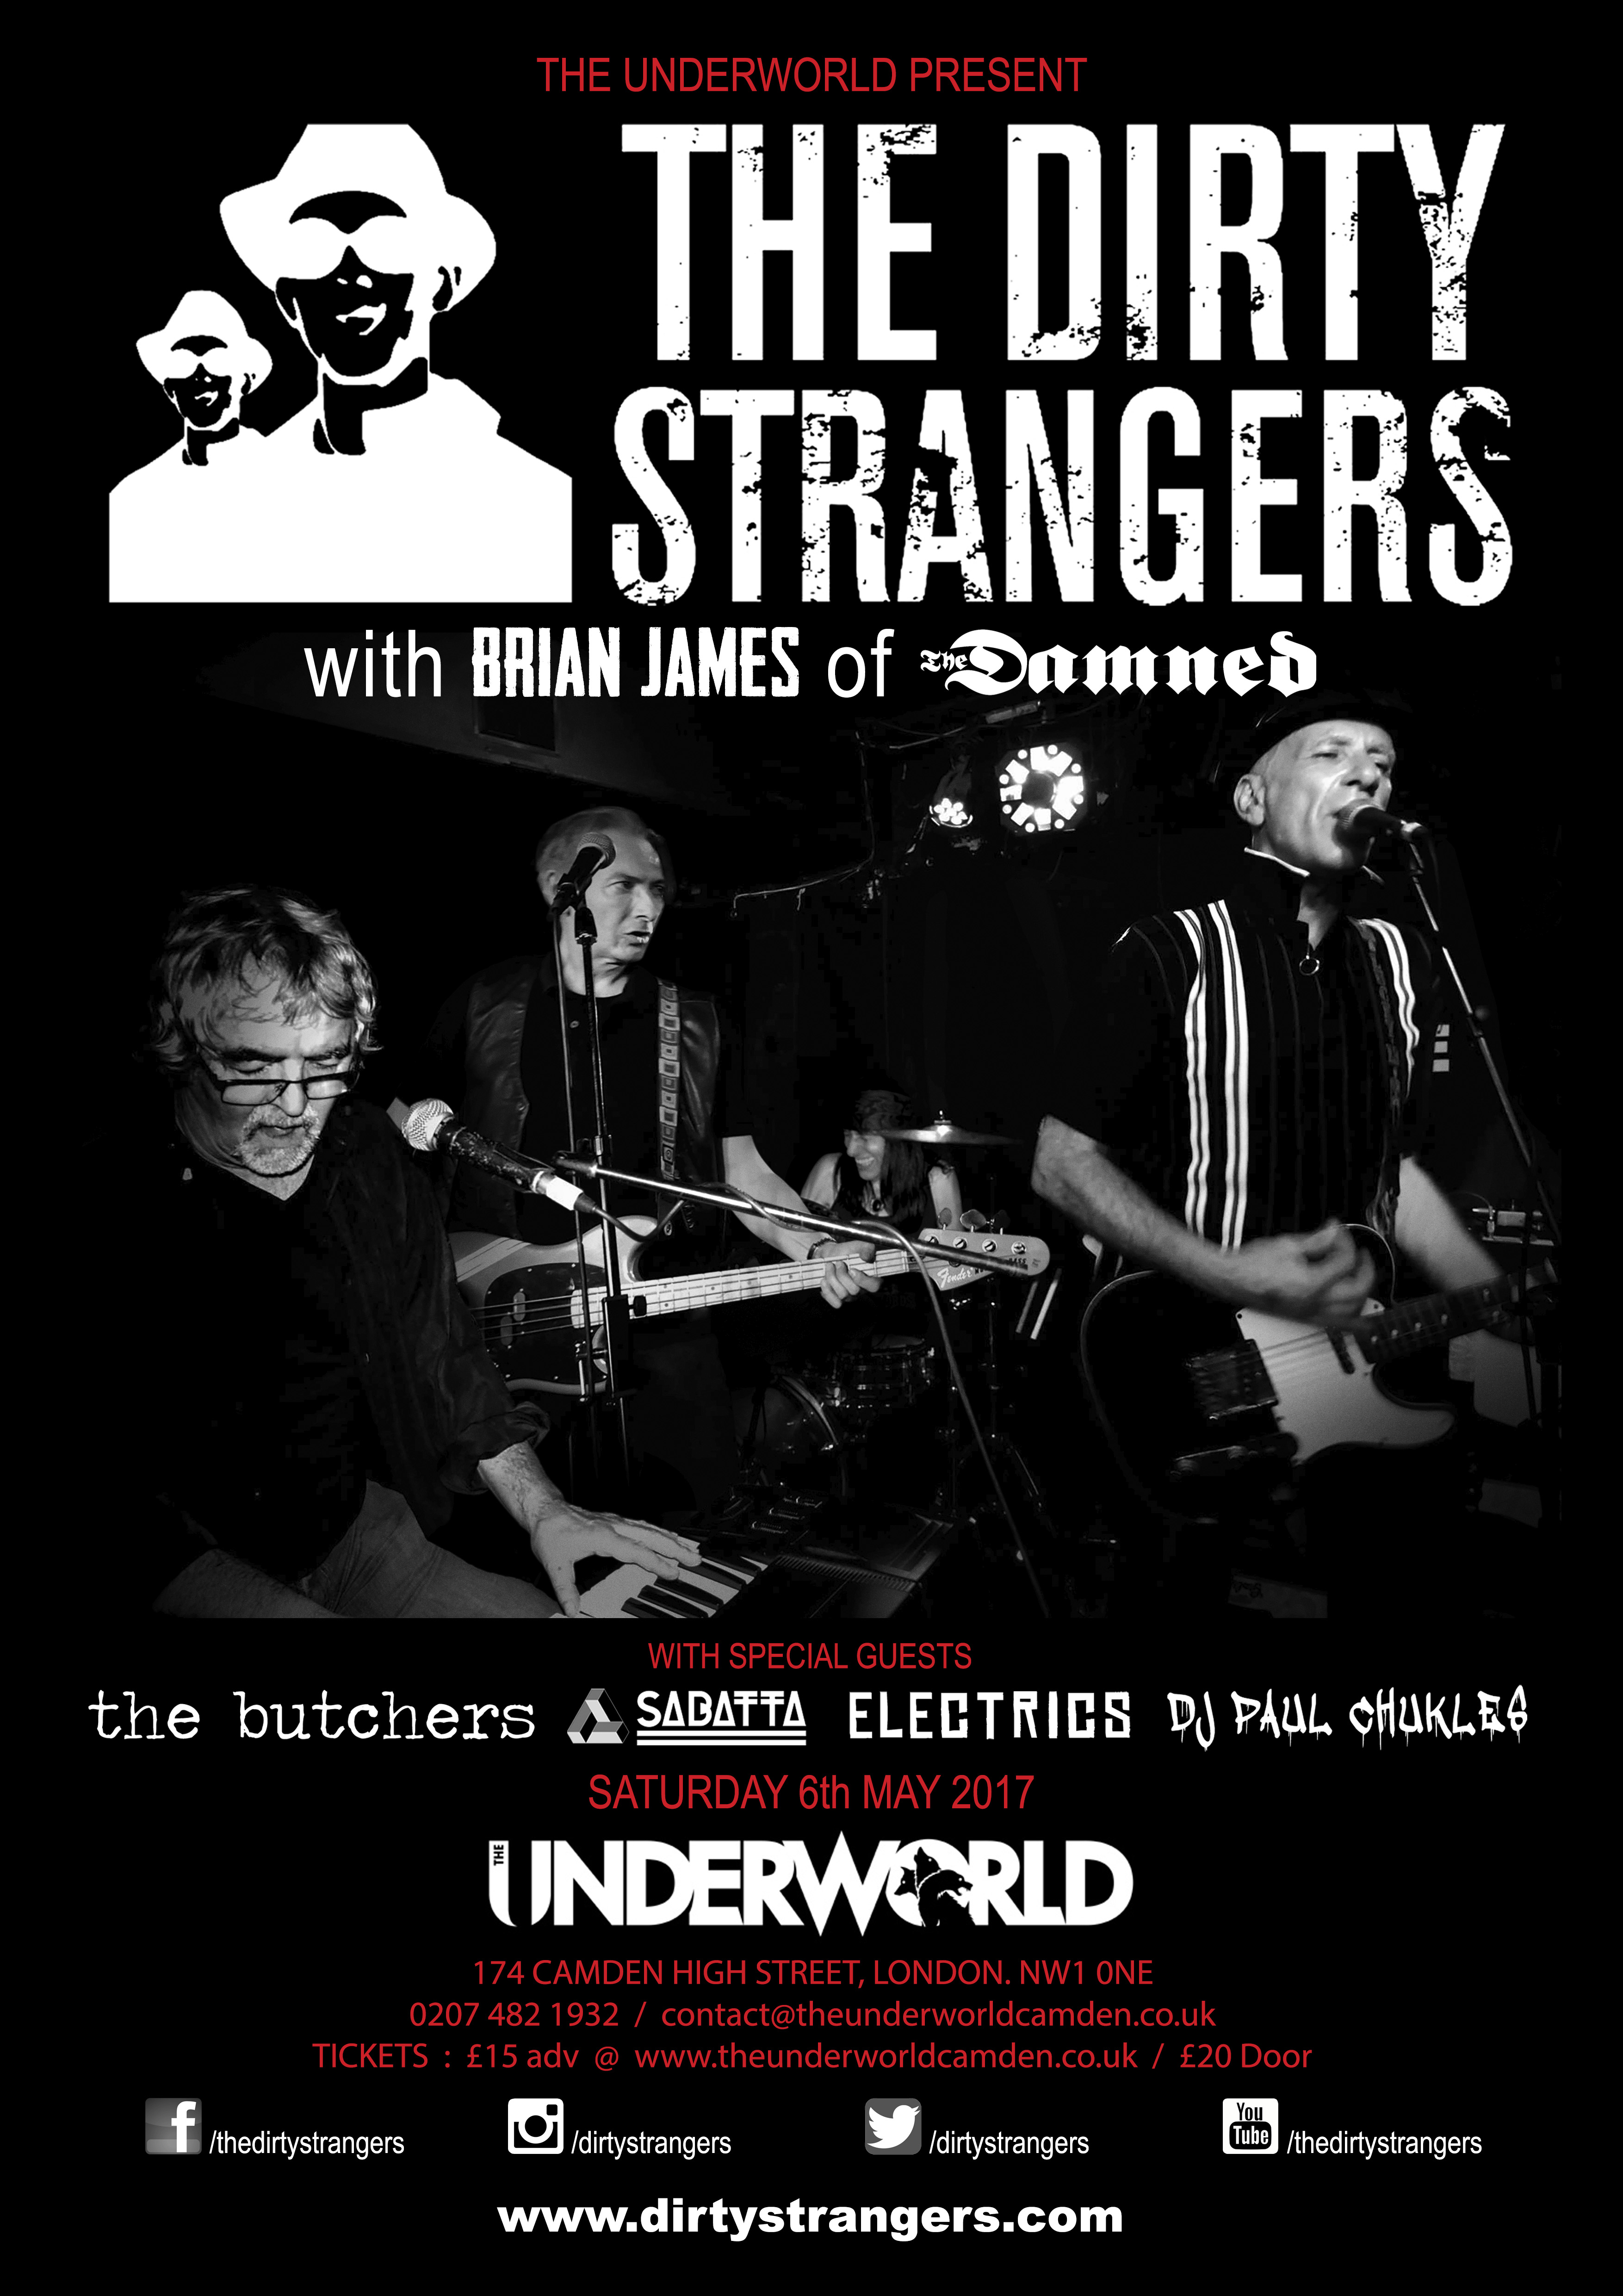 The Dirty Strangers w/ Brian James of The Damned